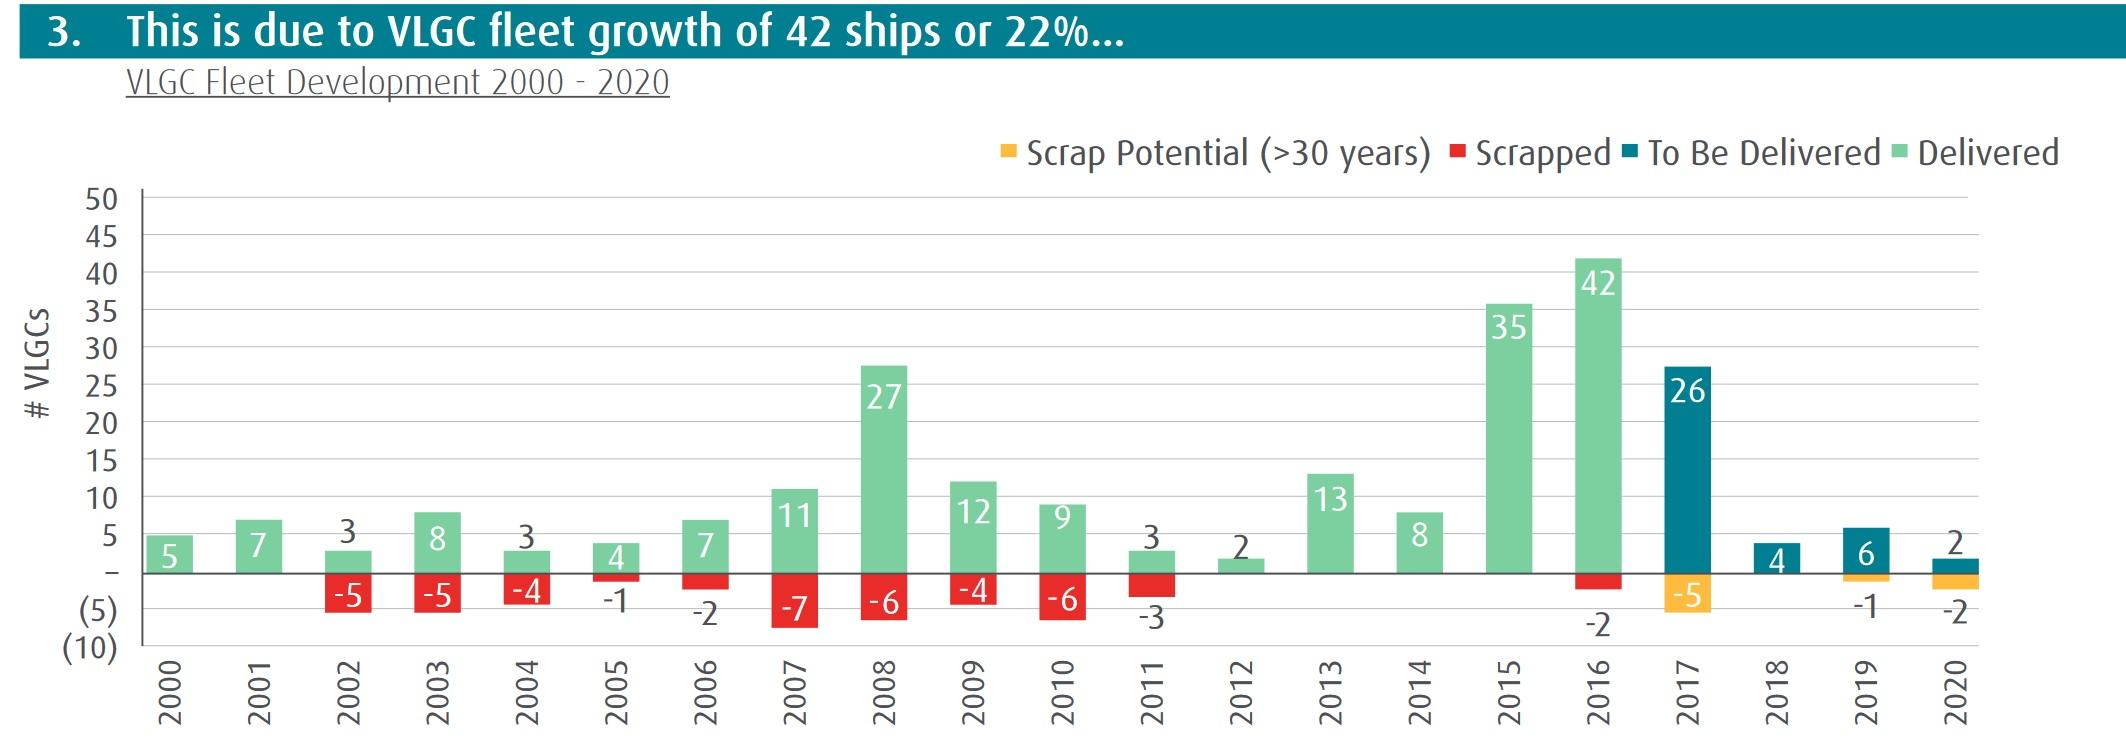 Major Turnaround In LPG Shipping By 2018? | Seeking Alpha